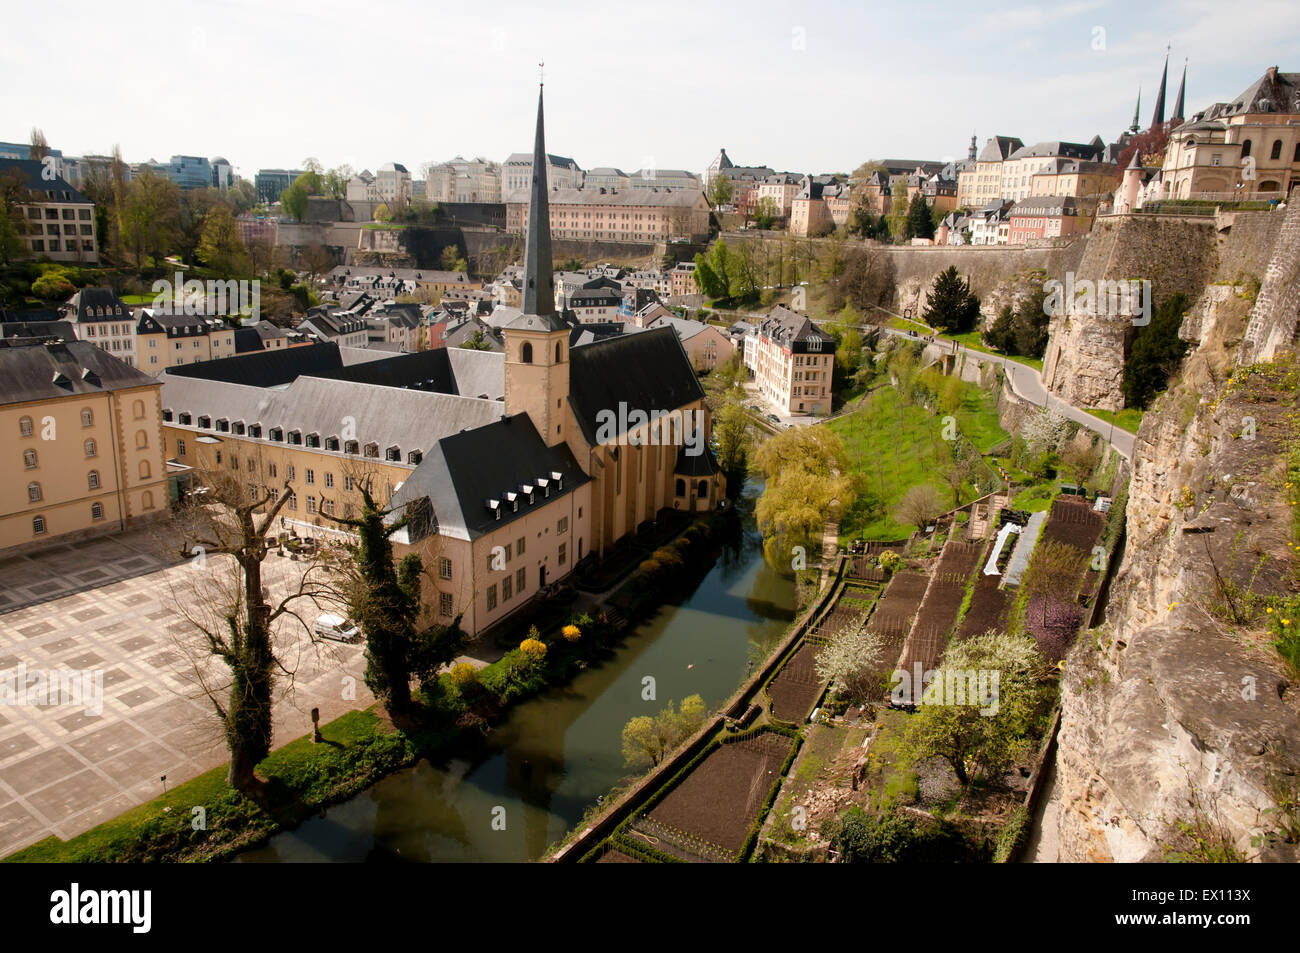 Luxembourg City Casemates - Stock Image